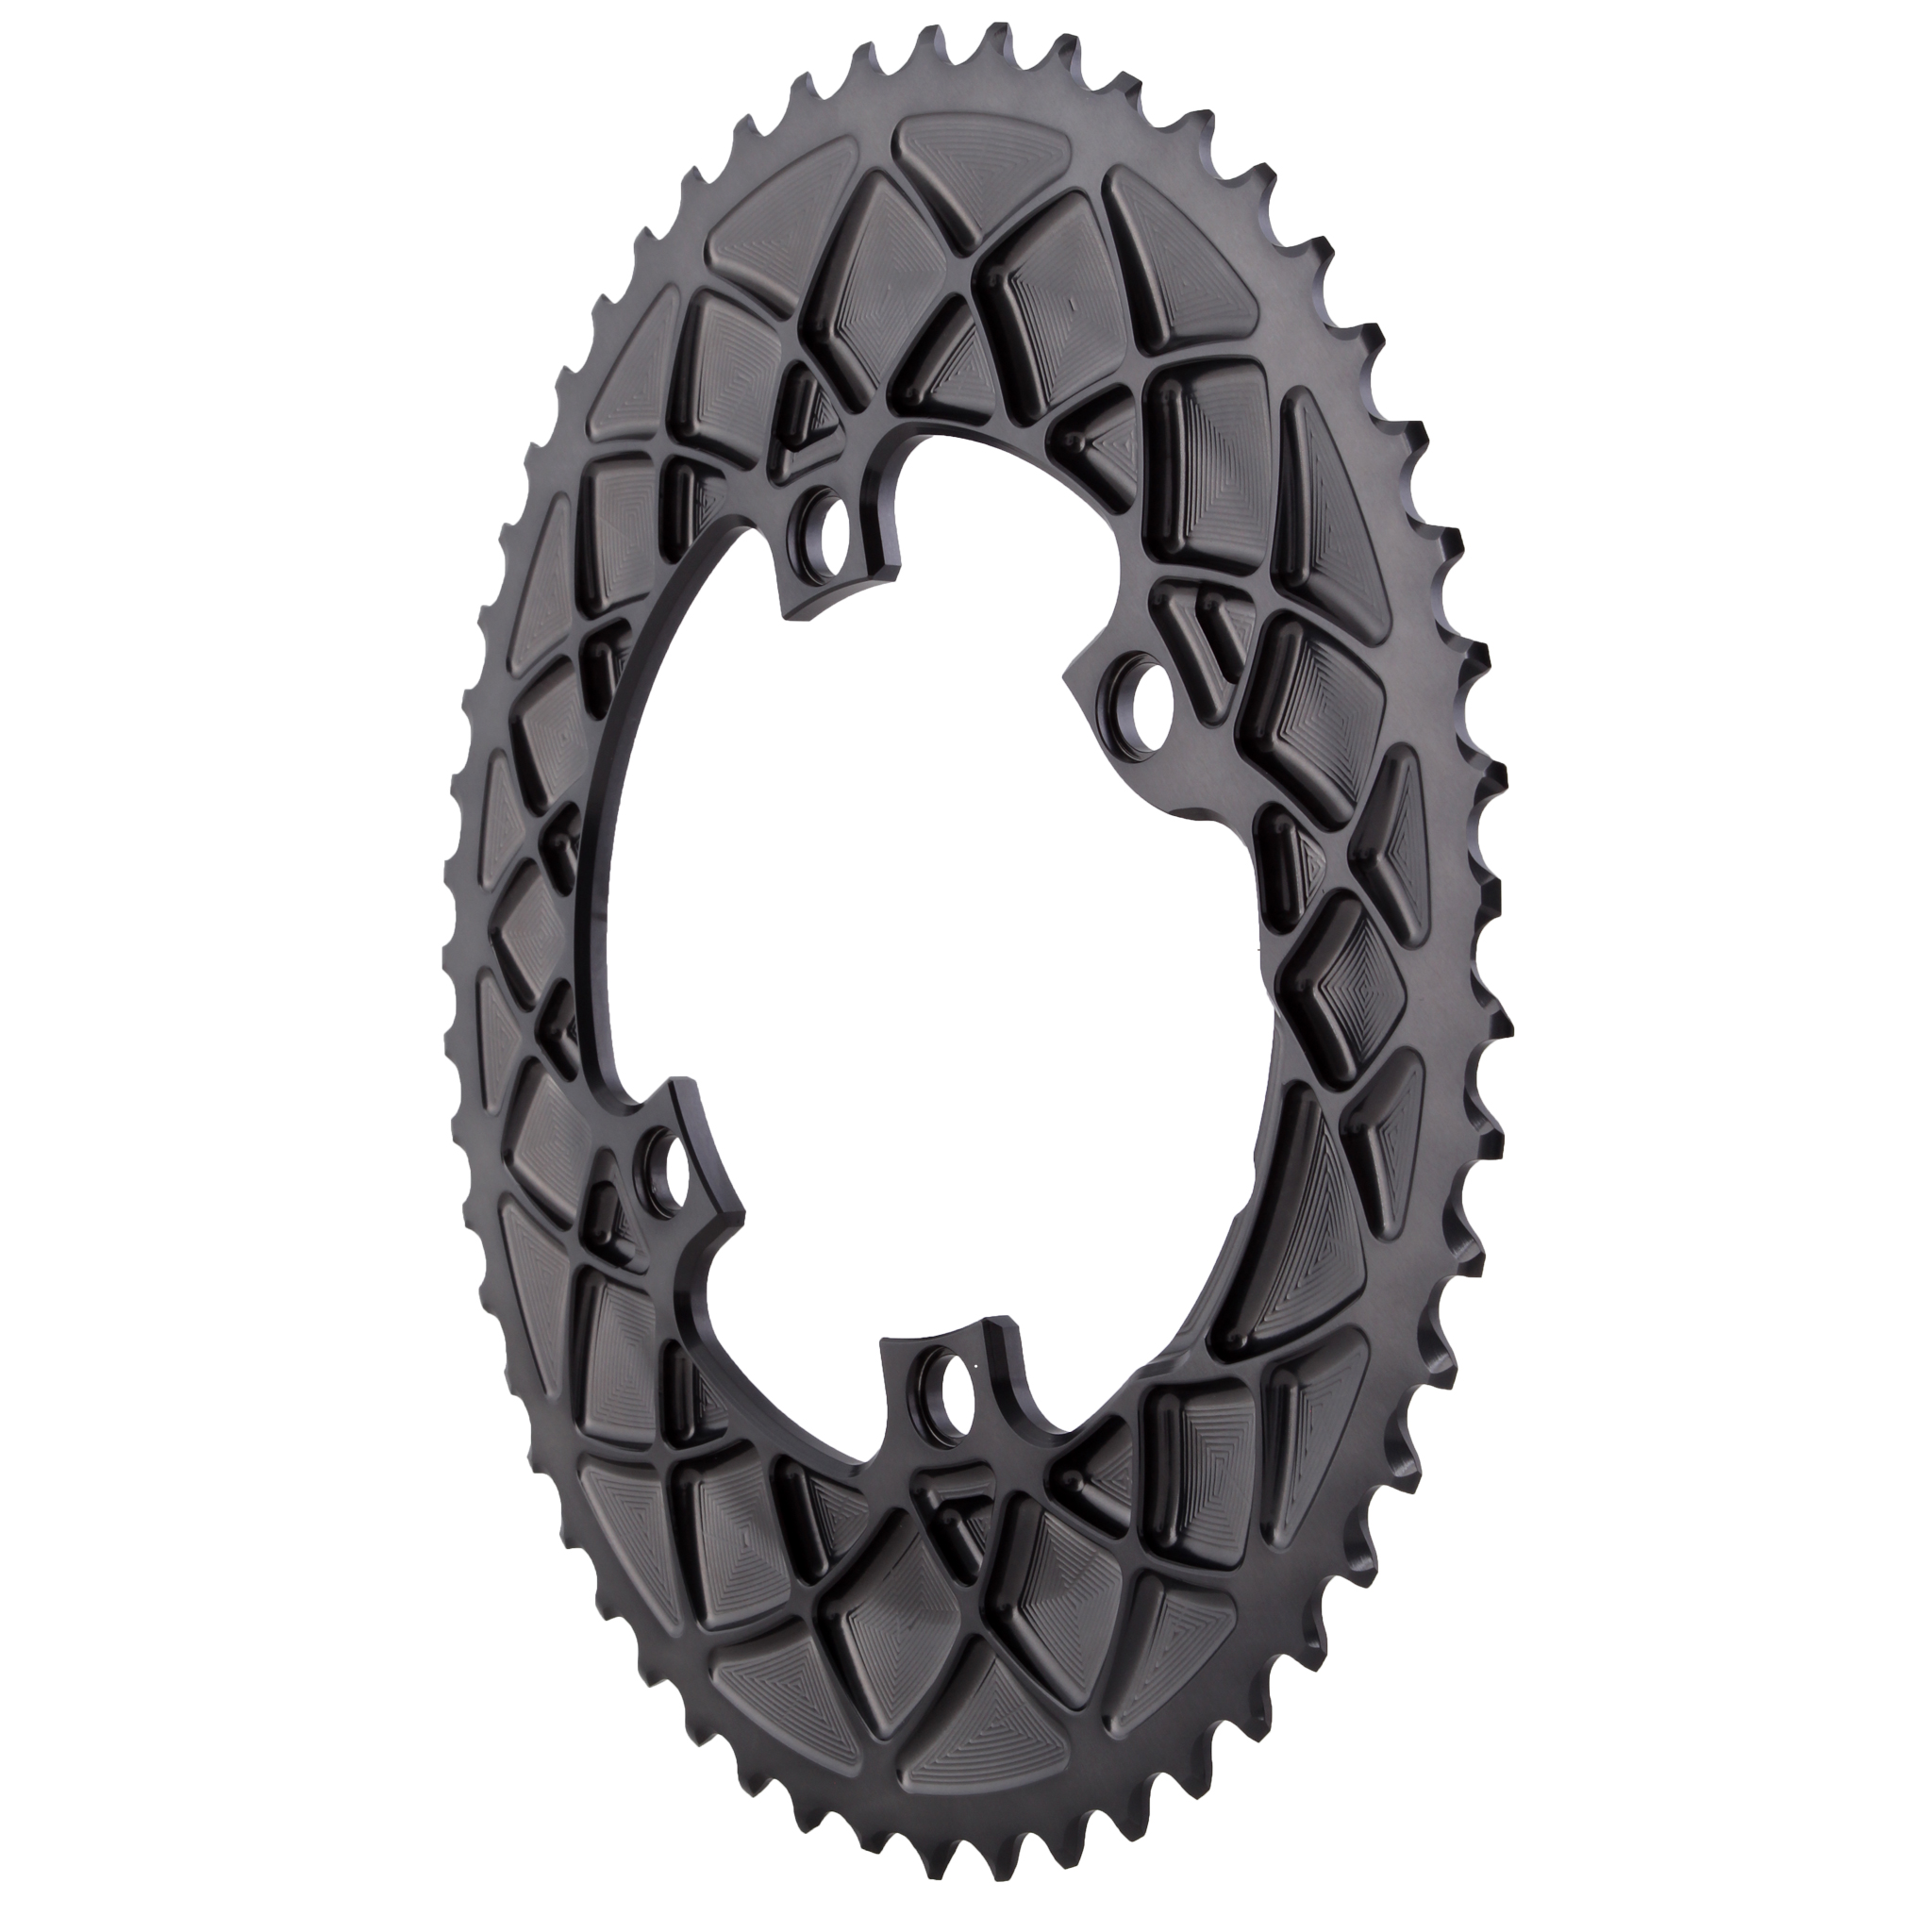 b4c9e0cce18 Absolute Black Premium oval road 53T, Shimano 9100/8000 - grey ...